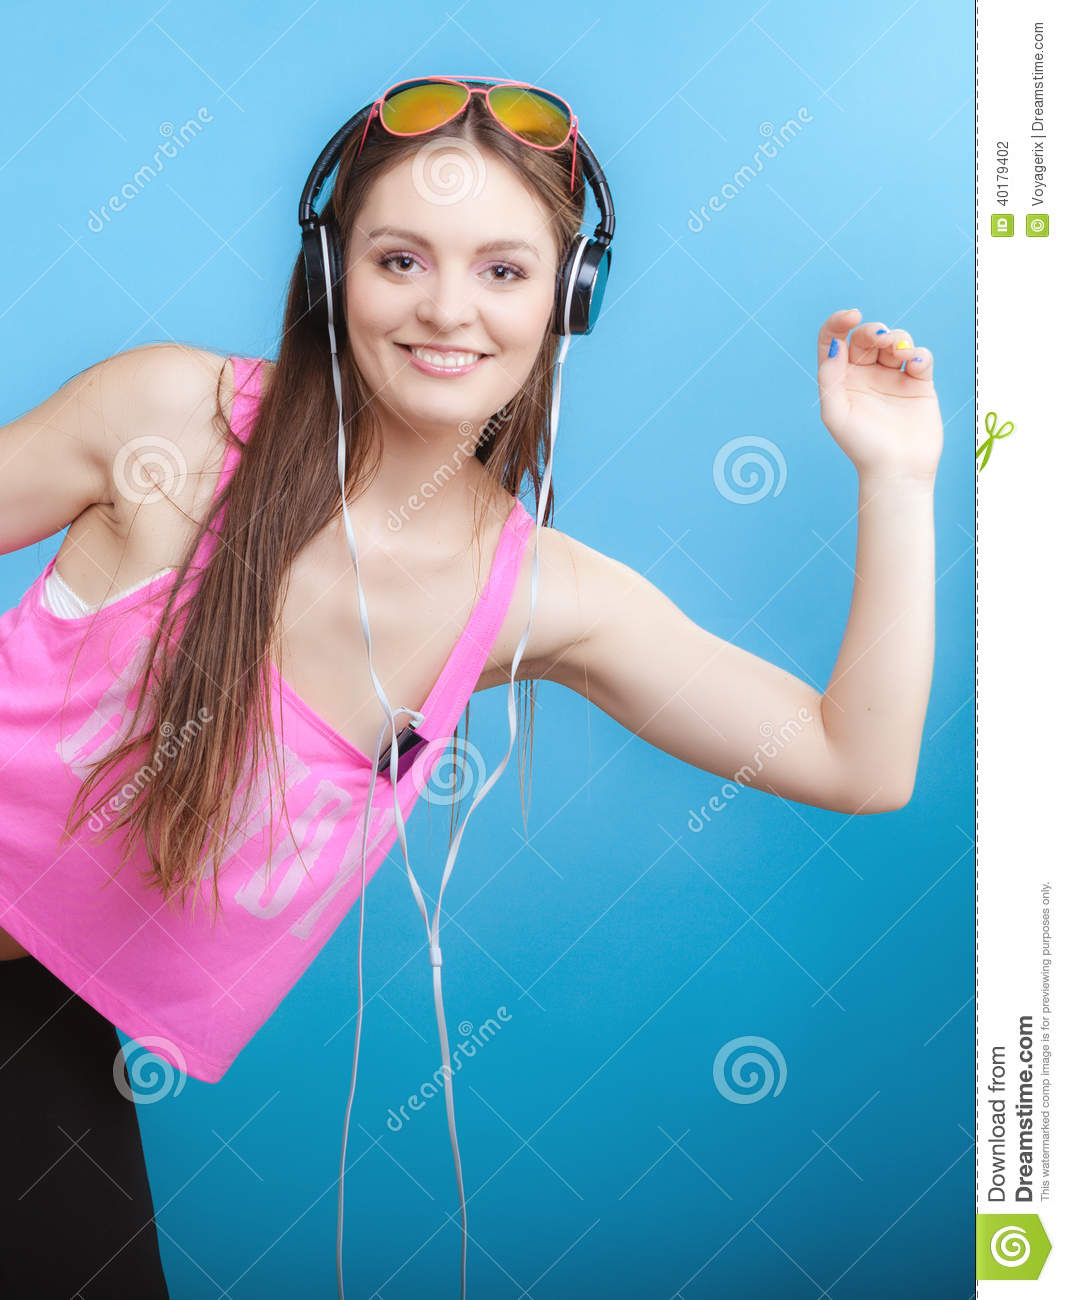 Mp3 Young Down: Fashion Teen Girl Listen Music Mp3 Relax Happy And Dancing